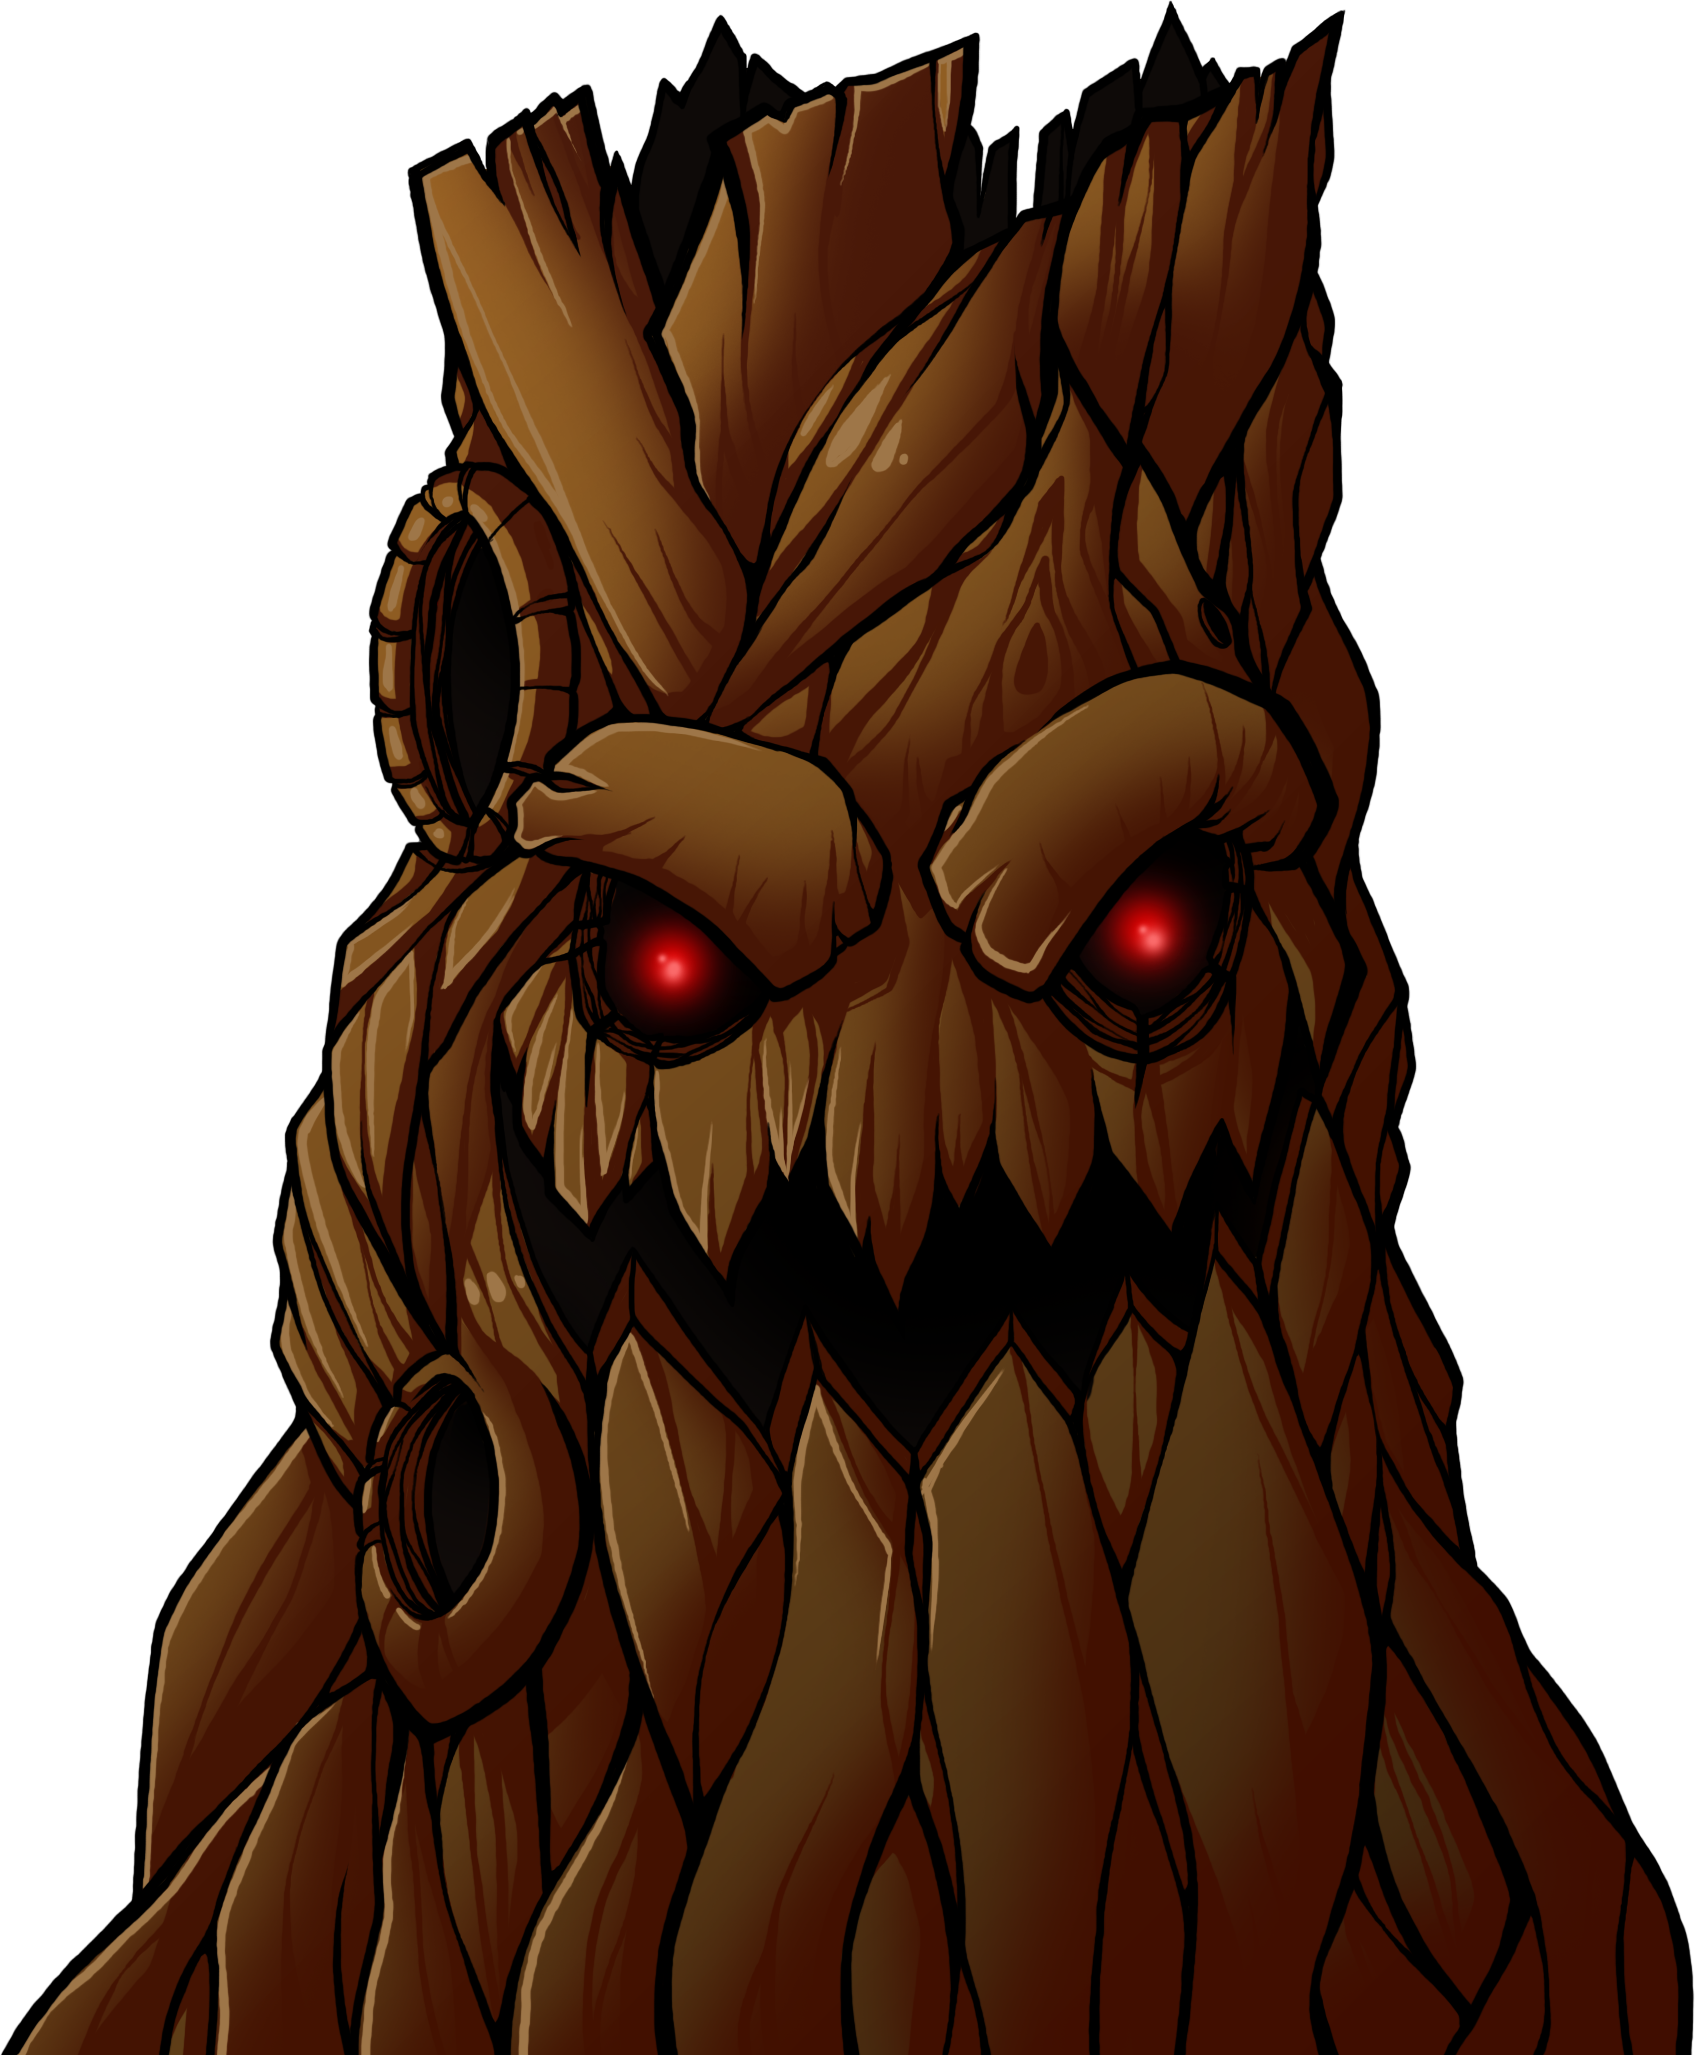 character design finding inspiration for bosses xmpt games one undeniably evil looking tree